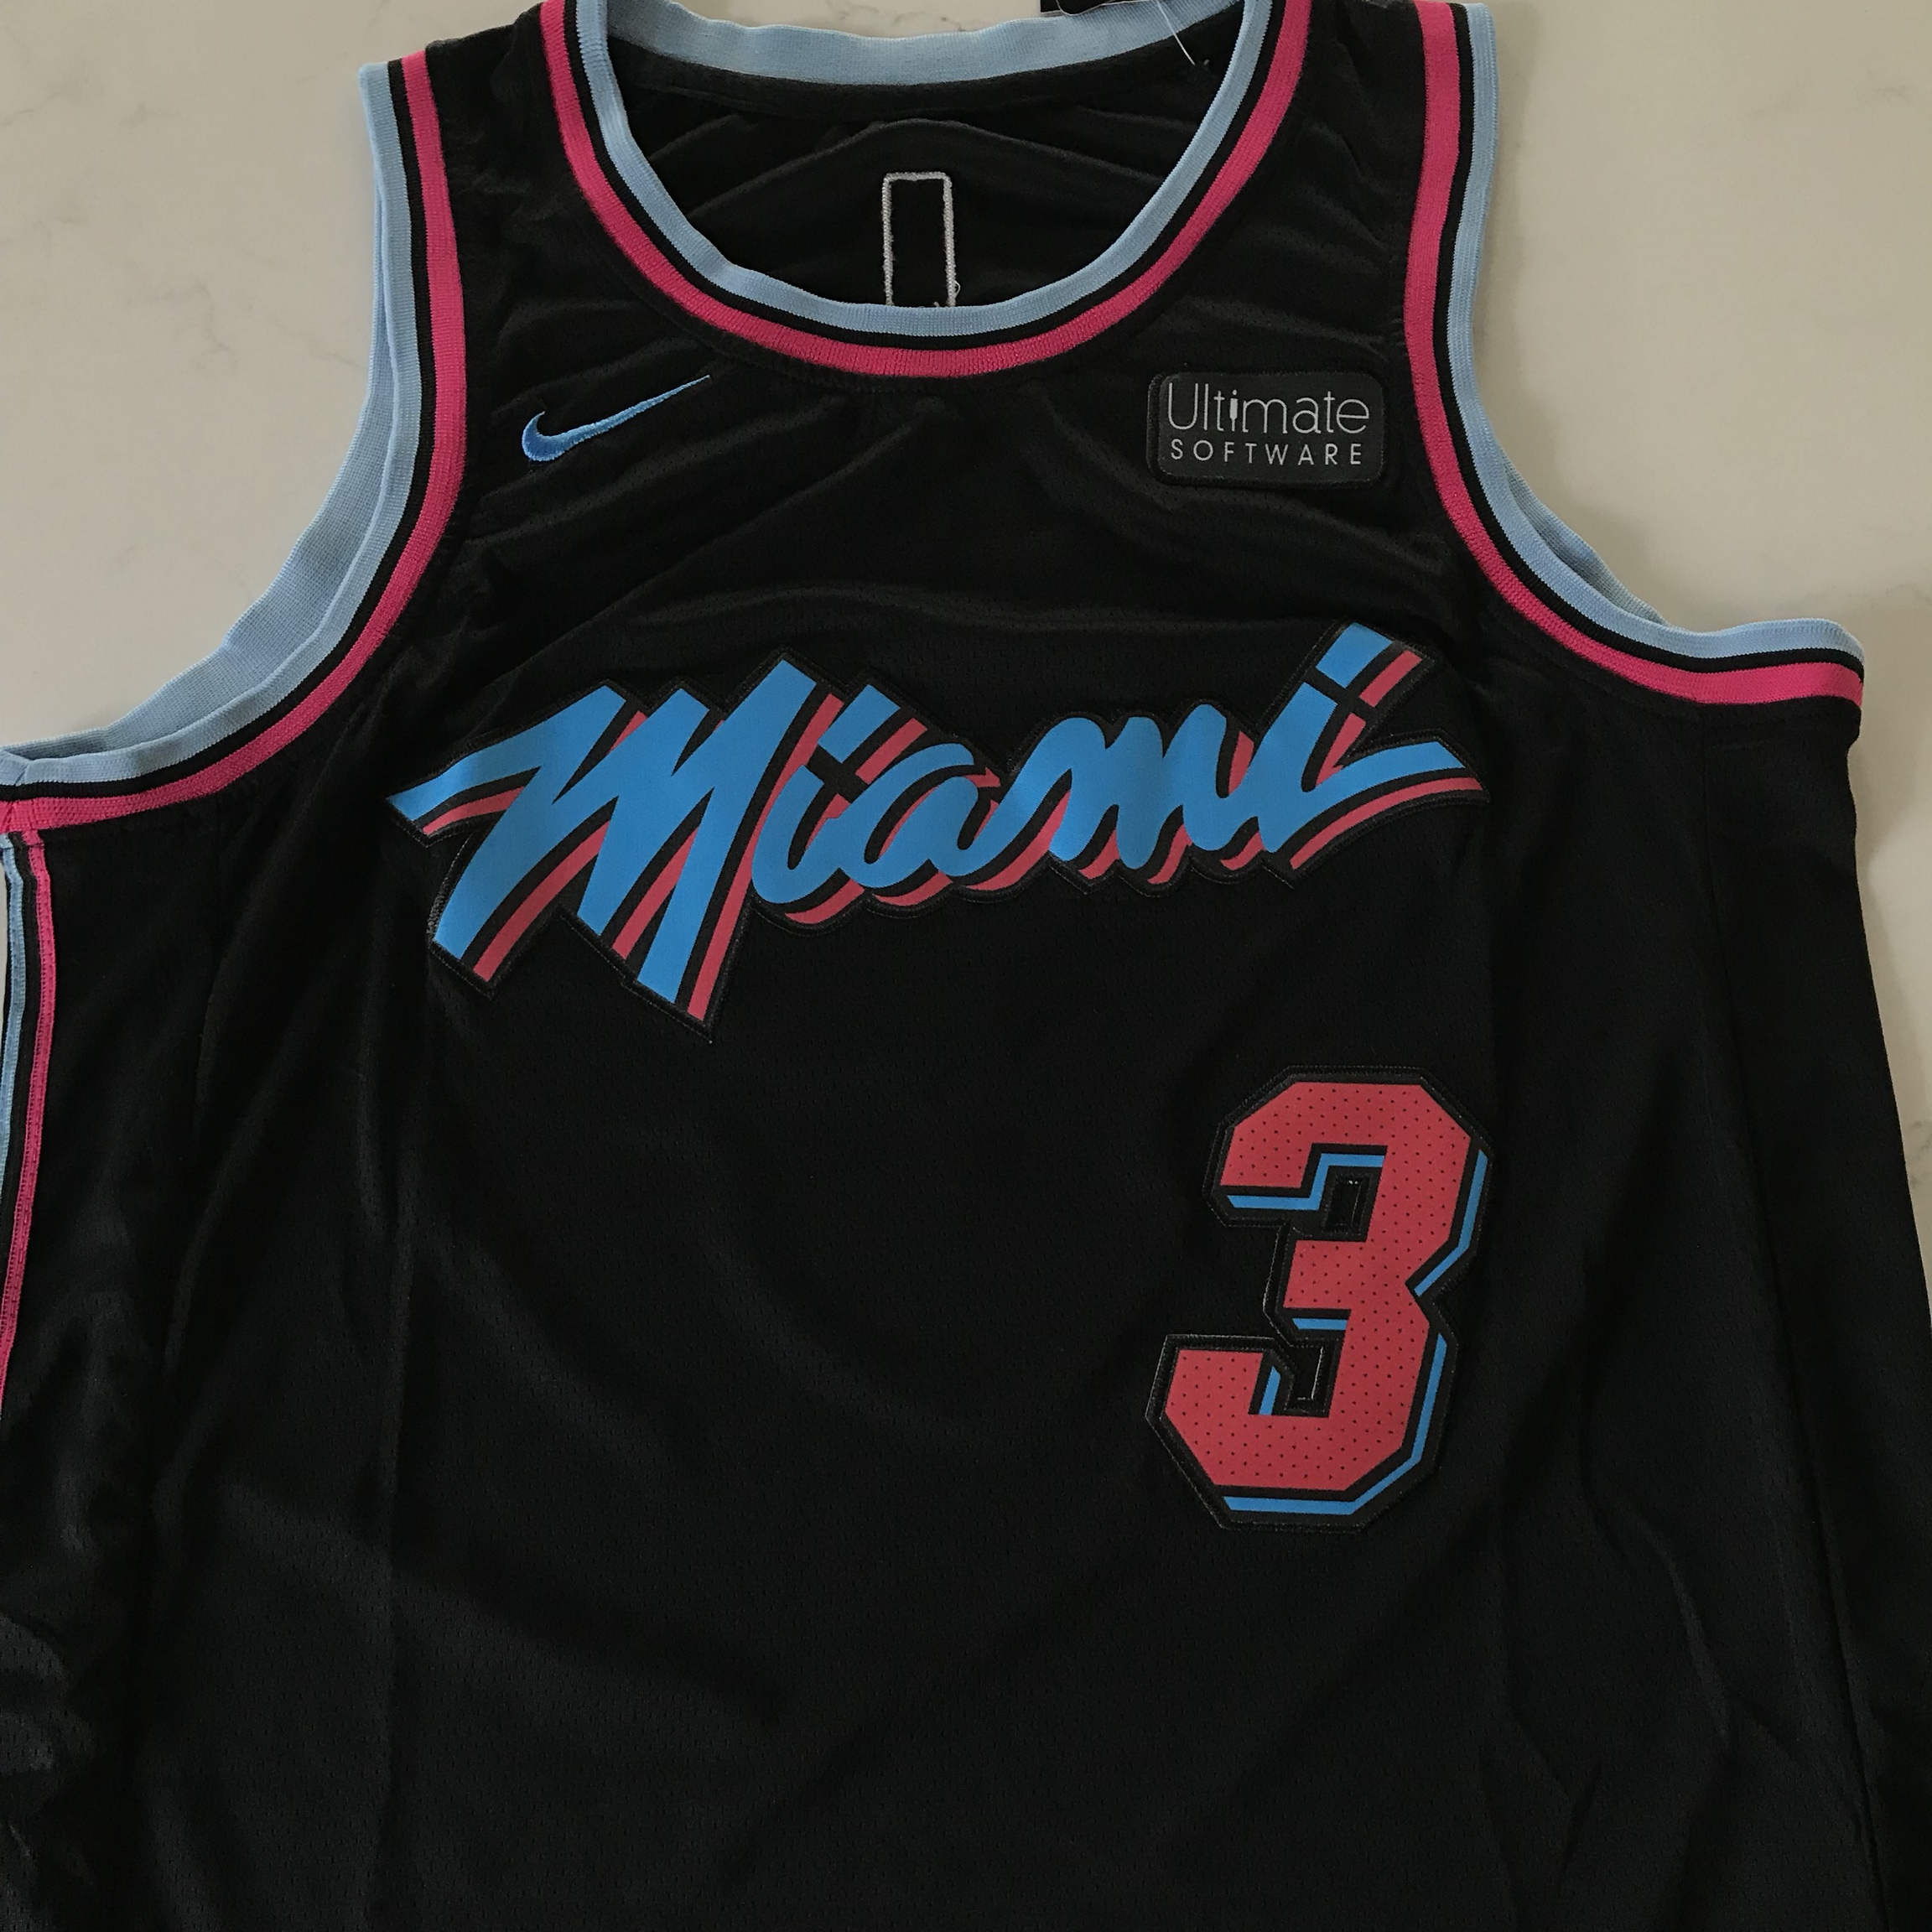 finest selection 42278 44baf Dwyane Wade Miami Vice Heat Black Jersey New Nike... - Depop